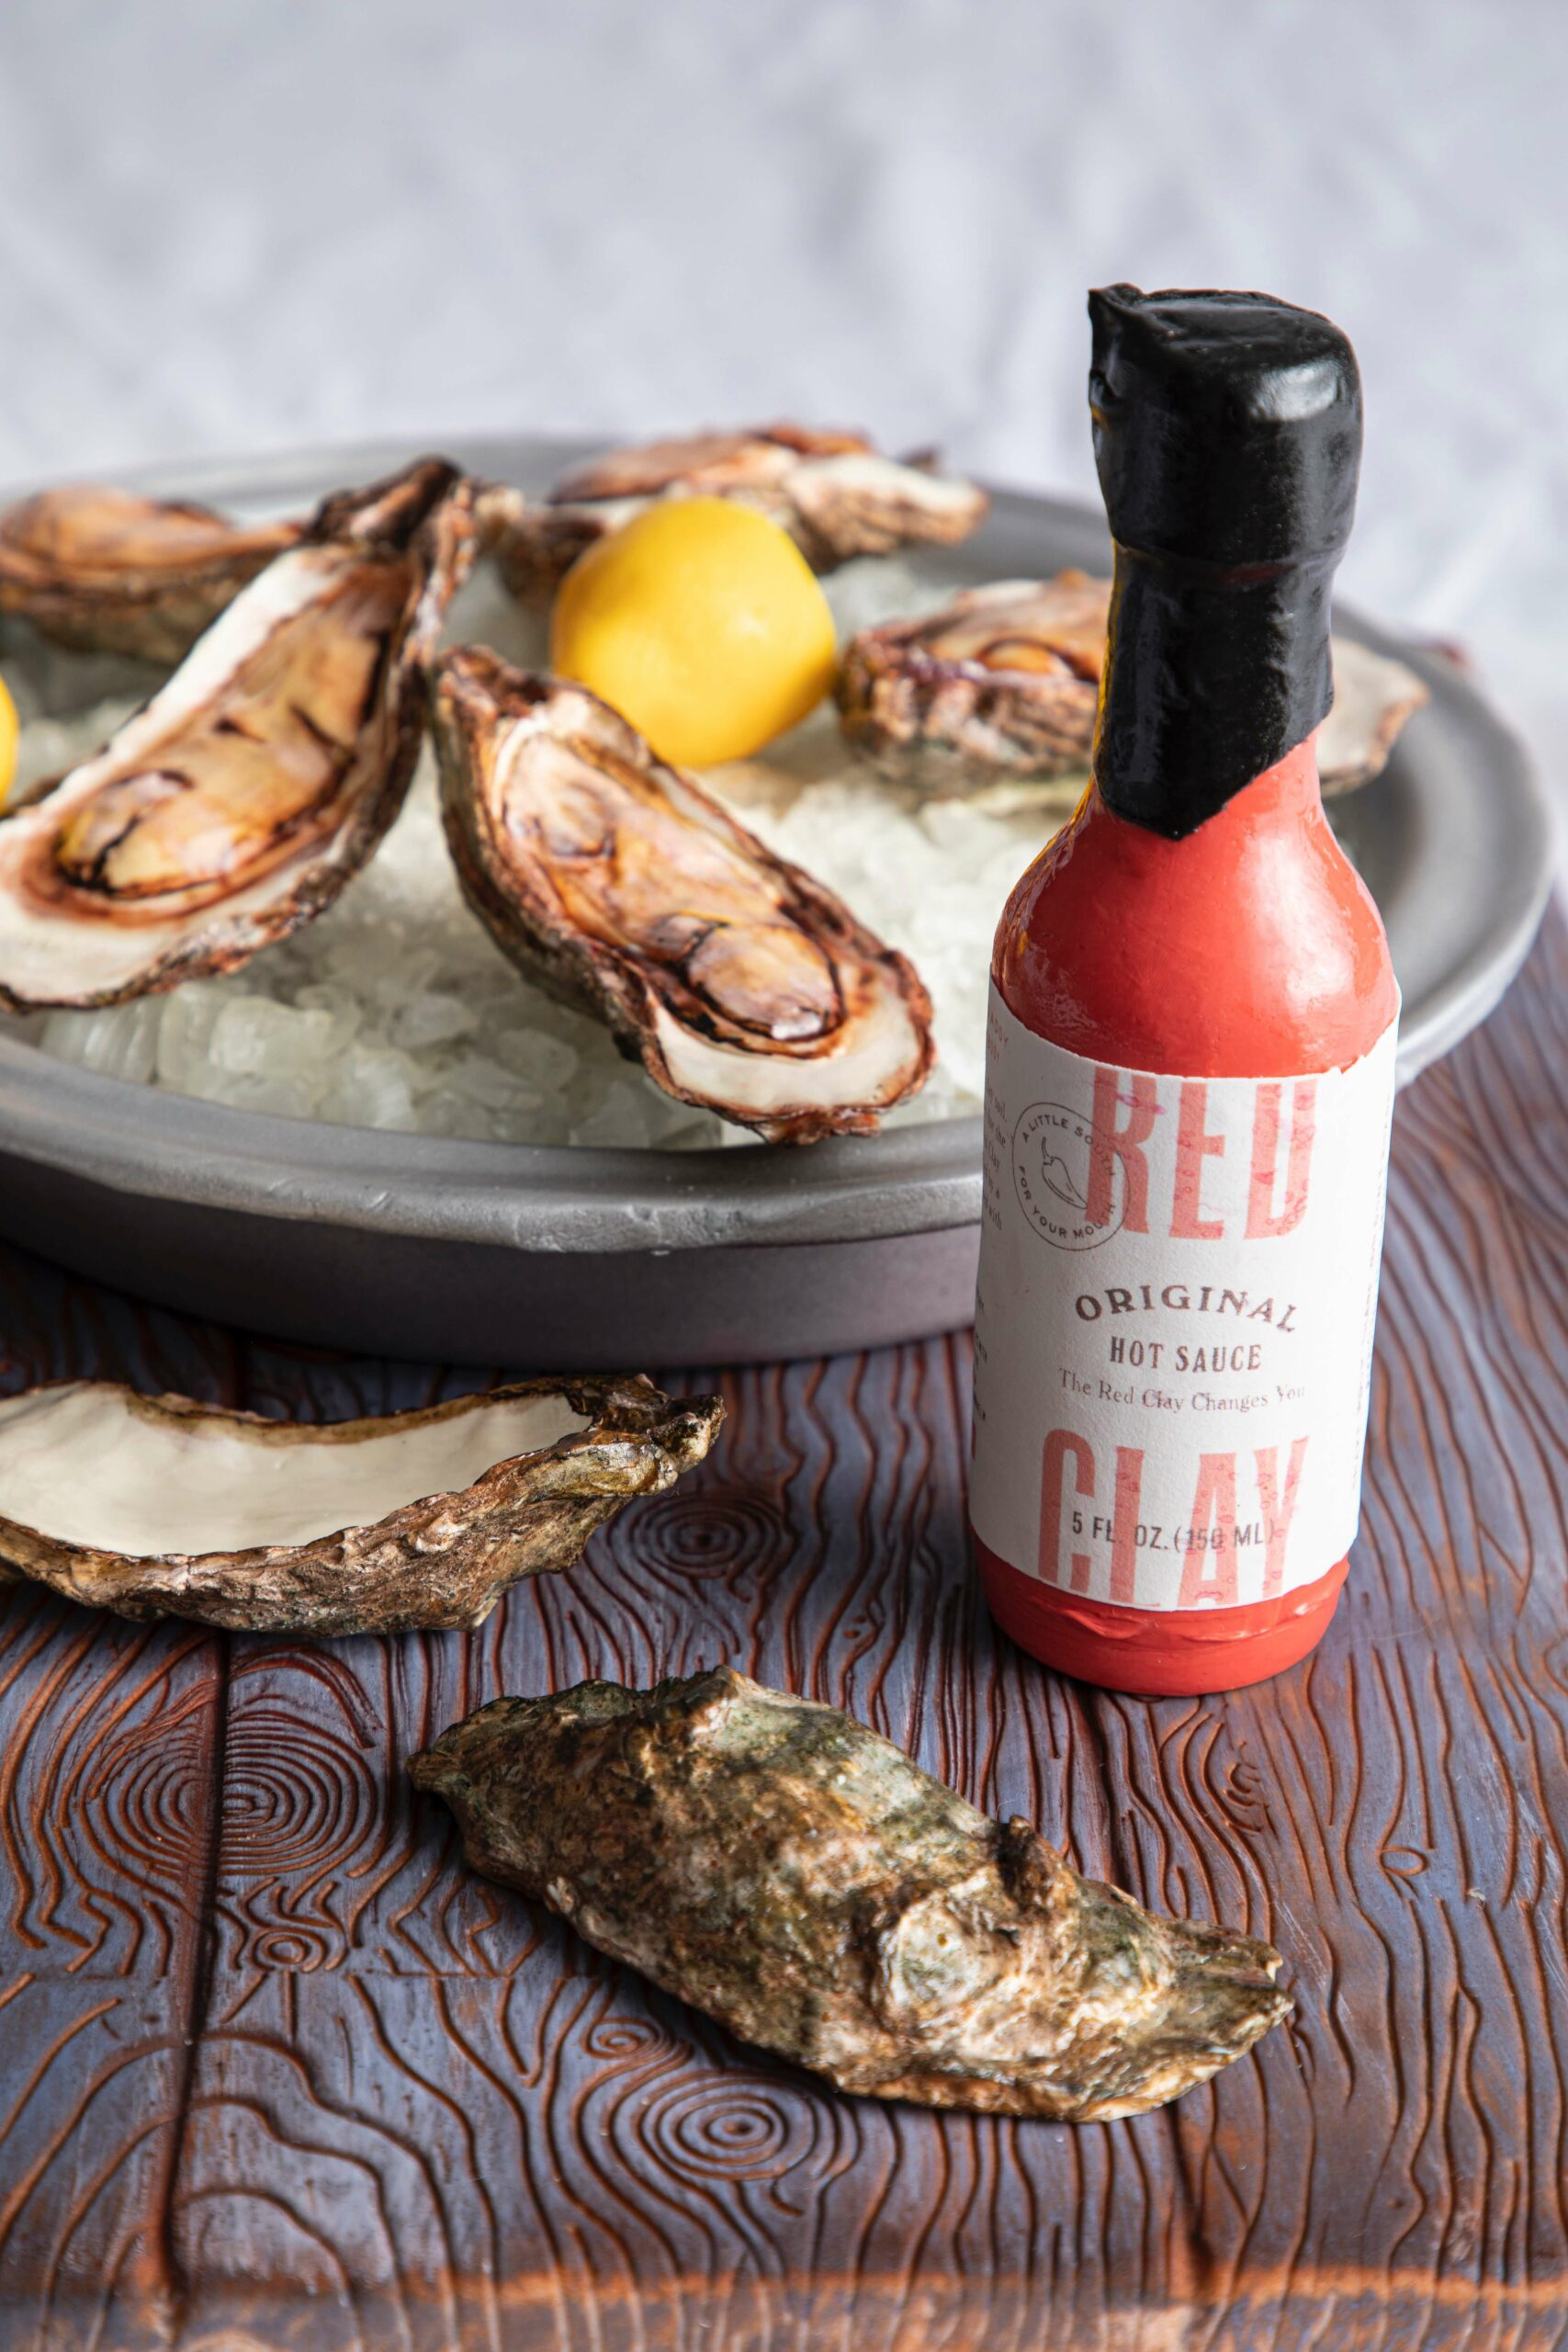 Oyster Tray Cake Red Clay Hot Sauce